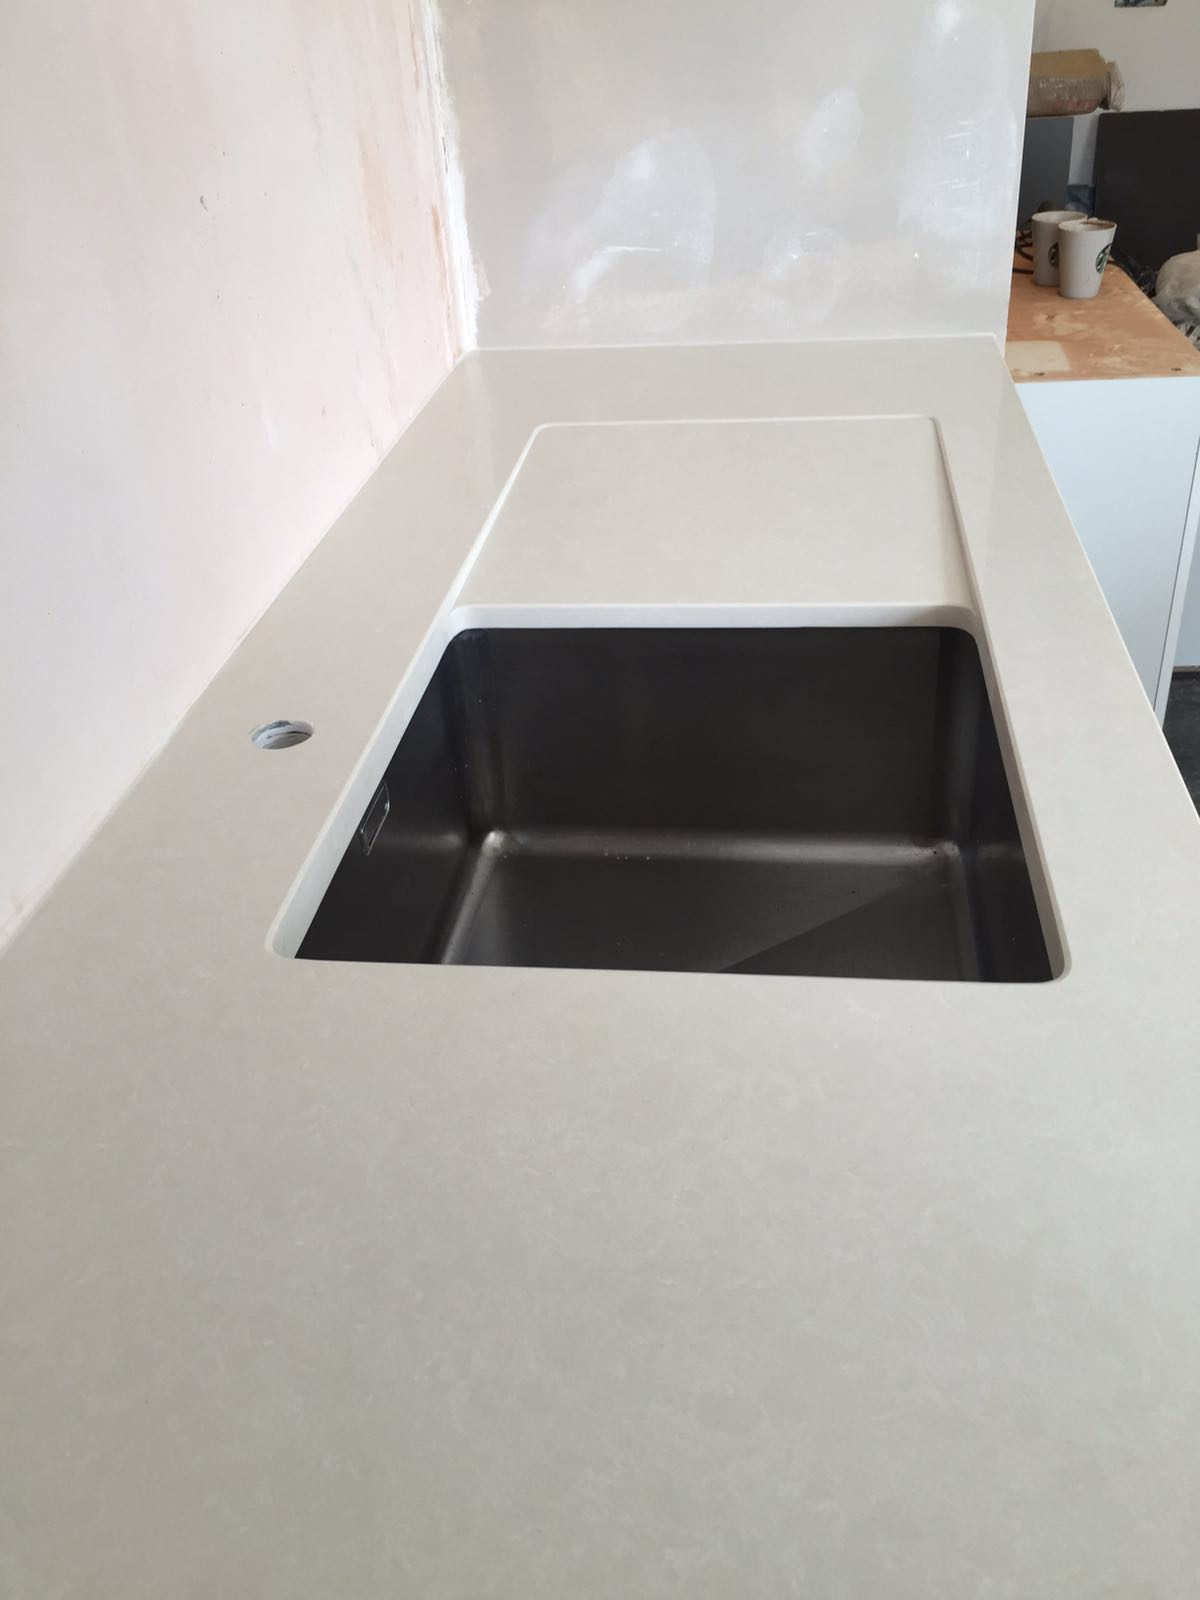 recessed sink drainage